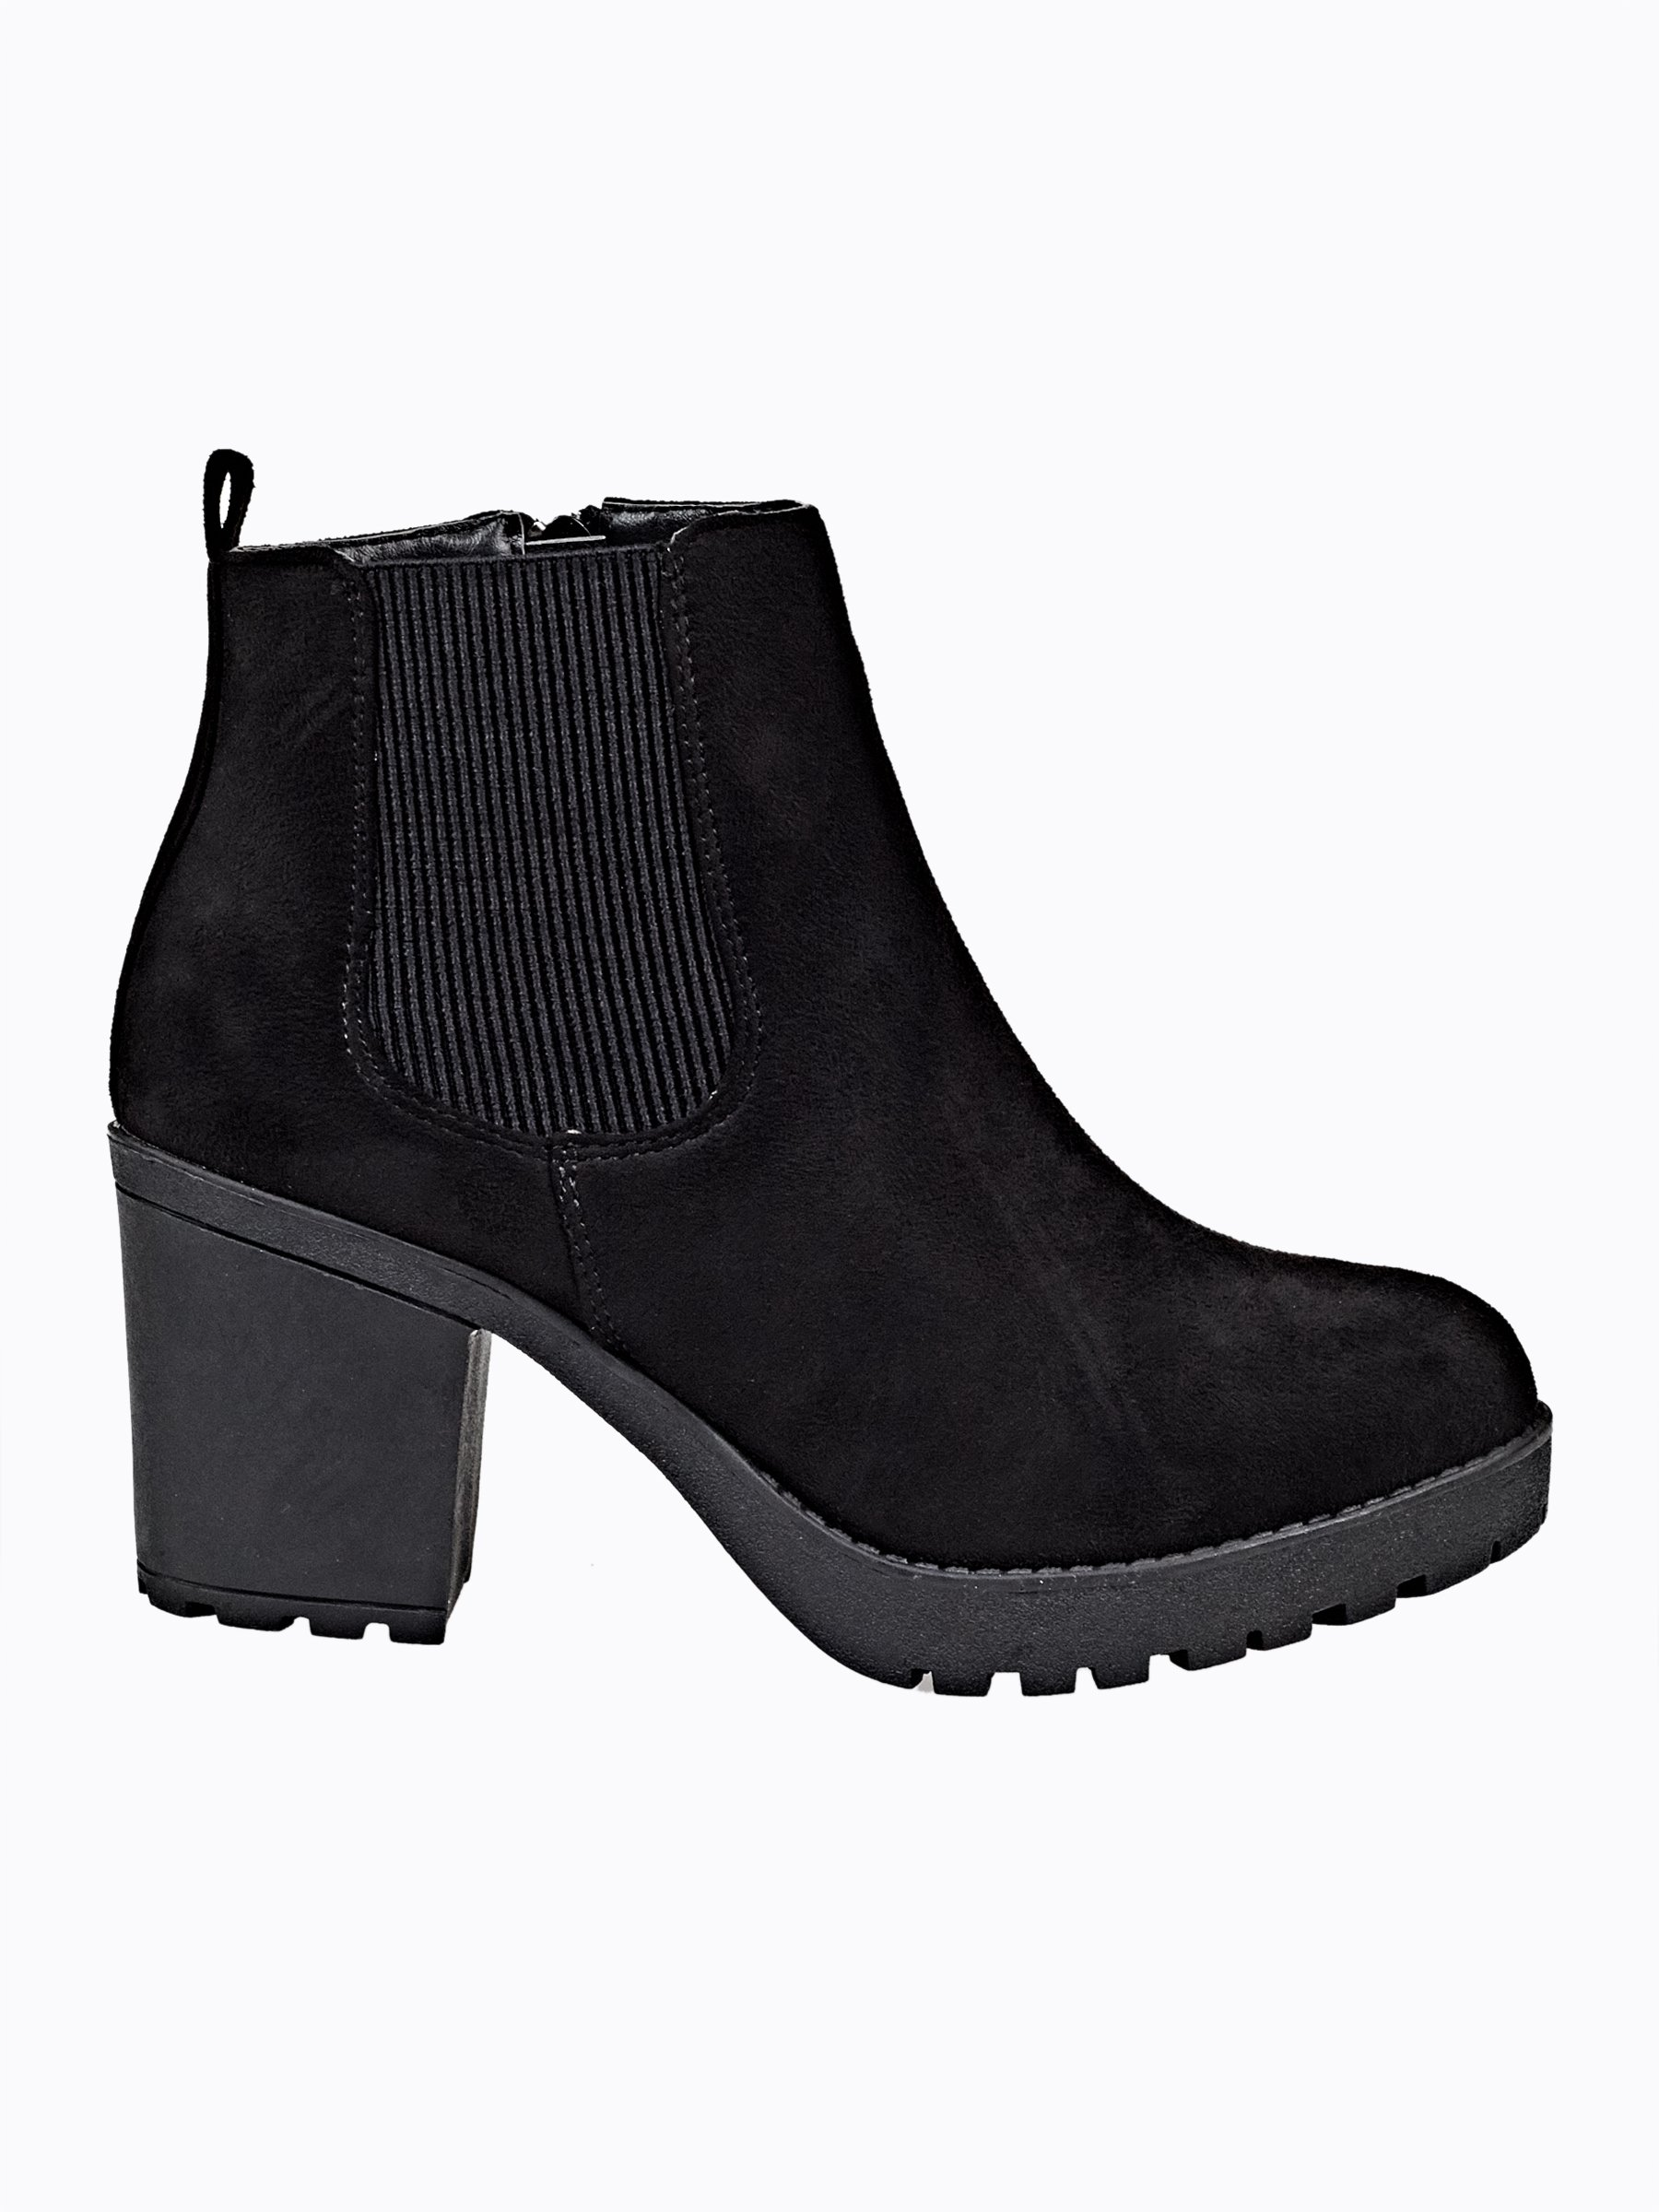 1396965b1fa High heel ankle boots with track sole | GATE